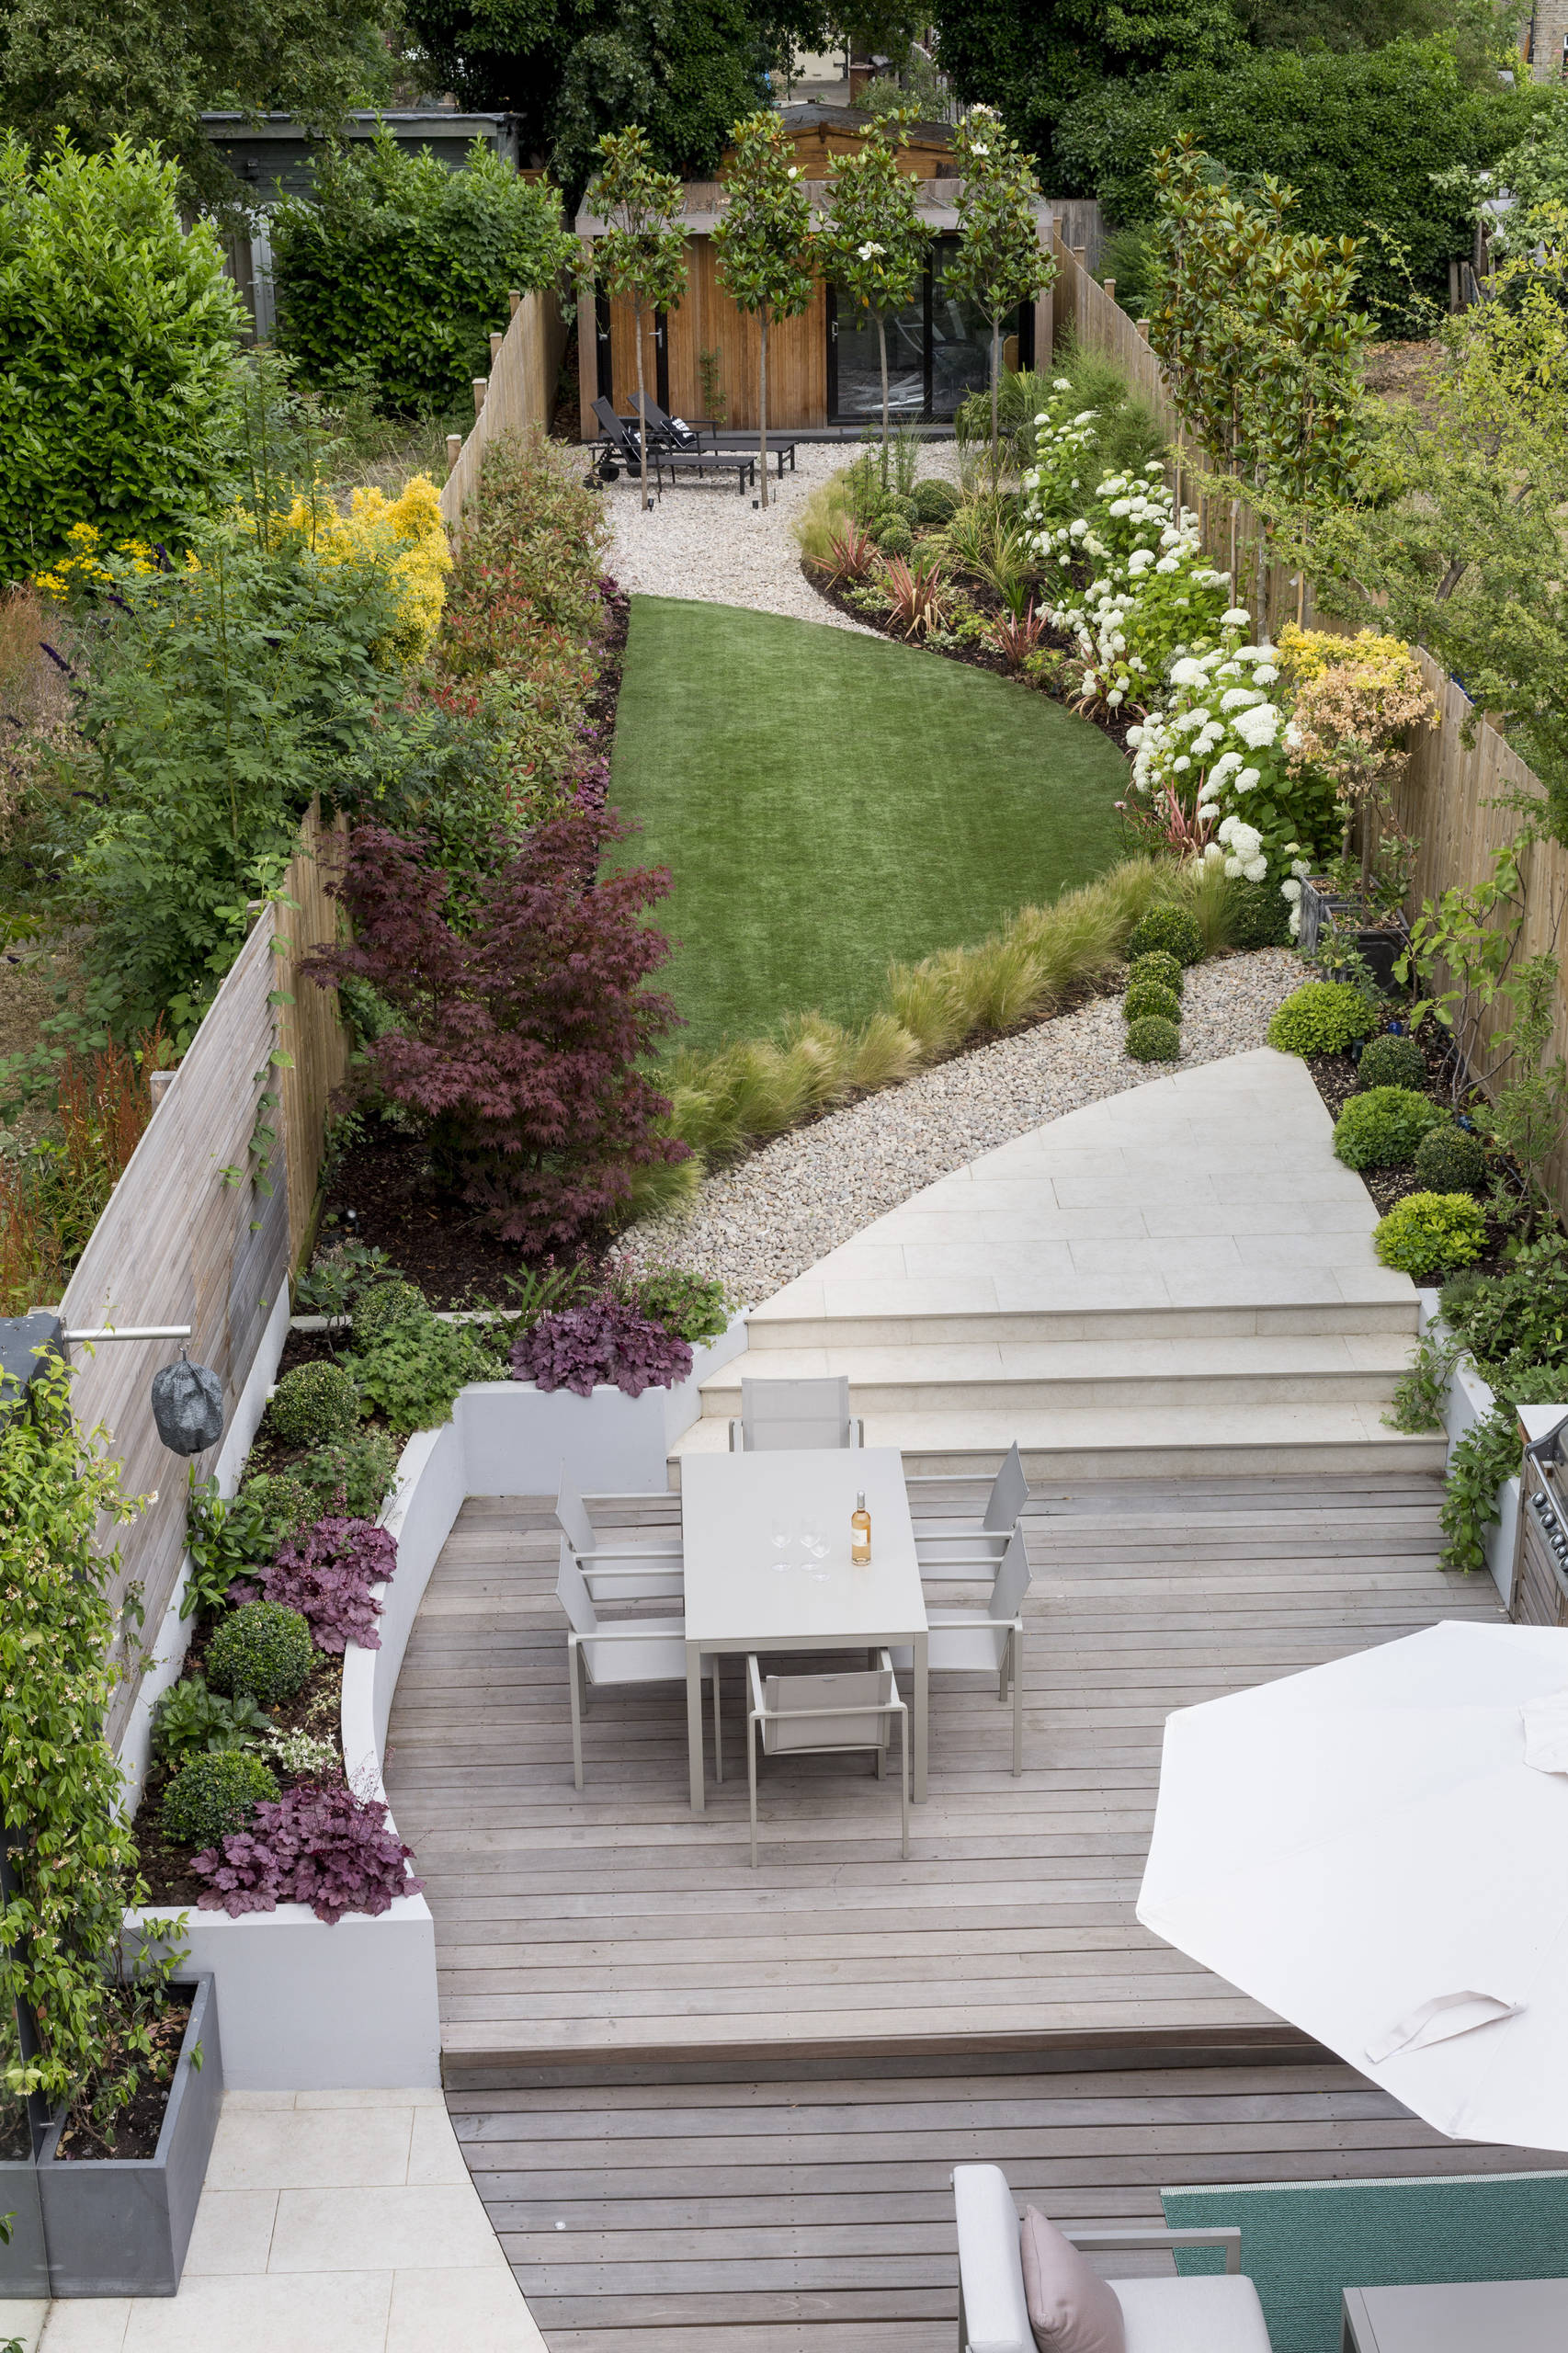 75 Beautiful Modern Landscaping Pictures Ideas January 2021 Houzz